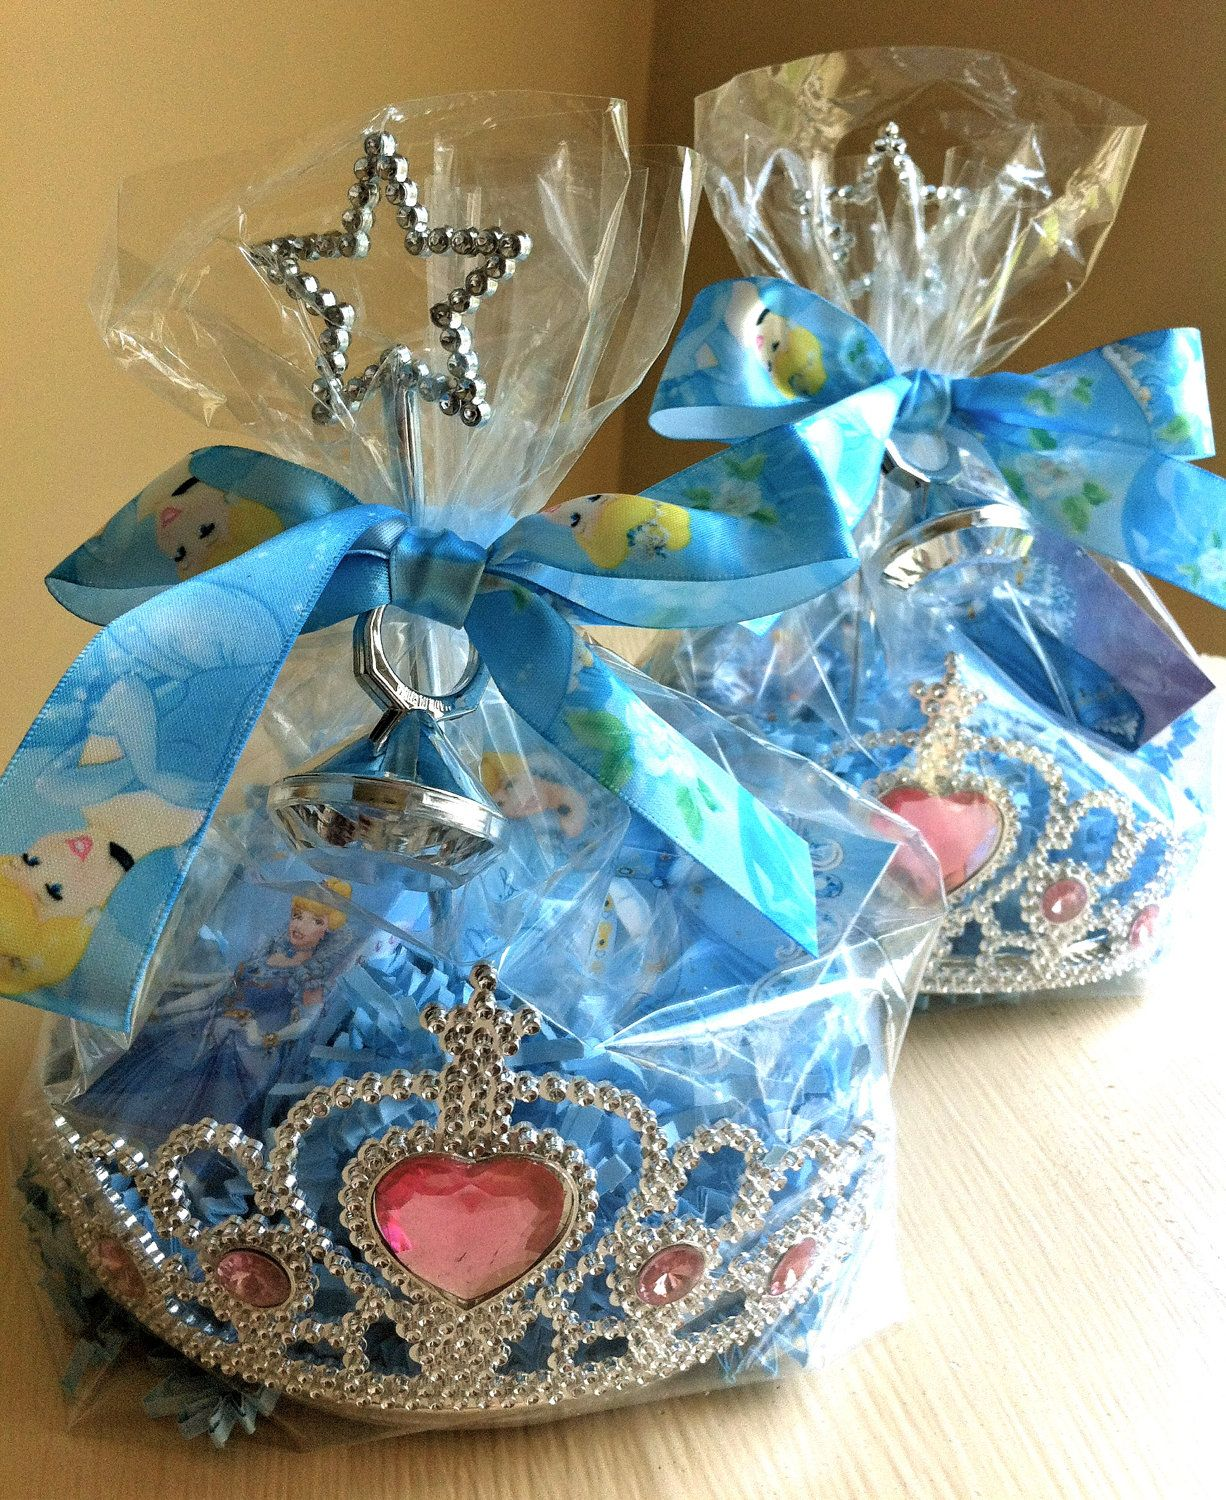 Princess Favors. (This leads to a selling site but it s a great idea for  favors you can make yourself.) Take a clear bag 6860052b370d